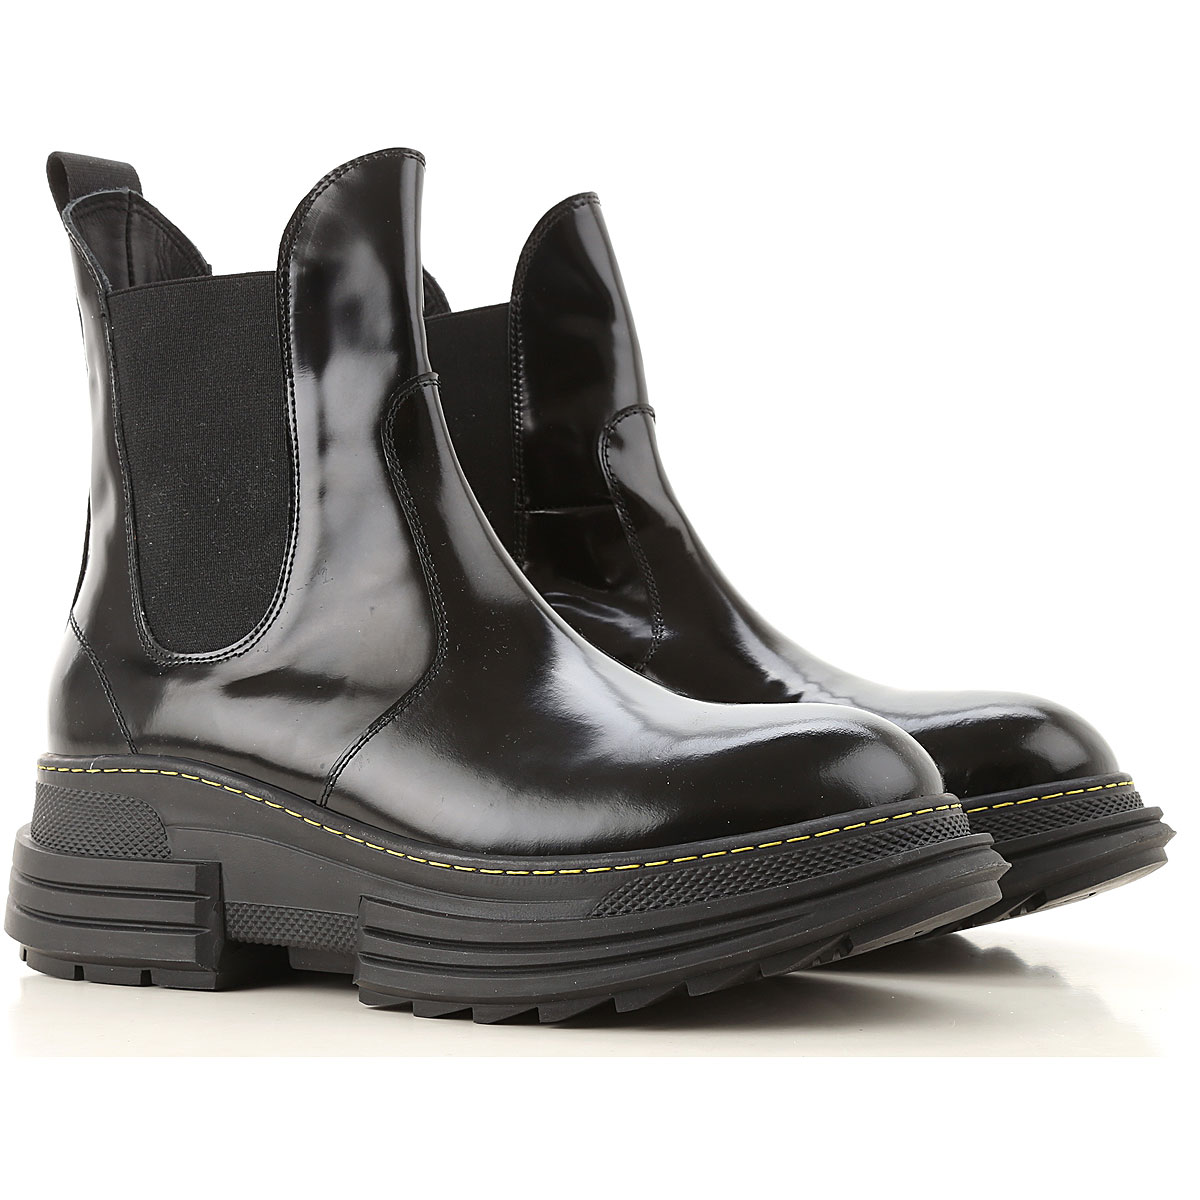 Beyond Boots for Women, Booties, Black, Patent Leather, 2019, 6 8 9